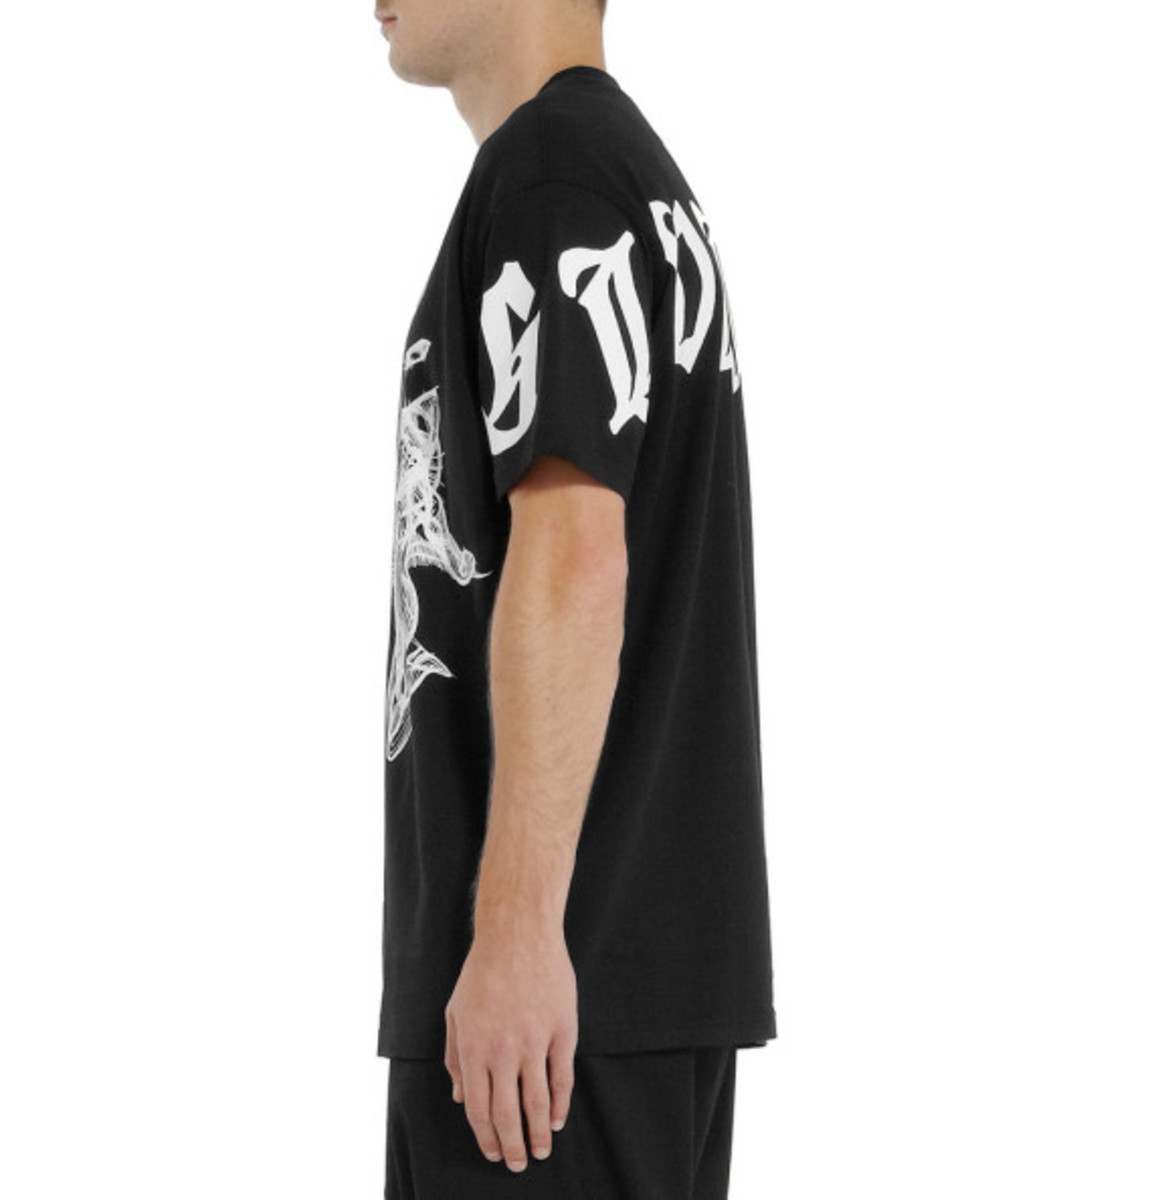 givenchy-columbian-fit-printed-cotton-jersey-tee-06